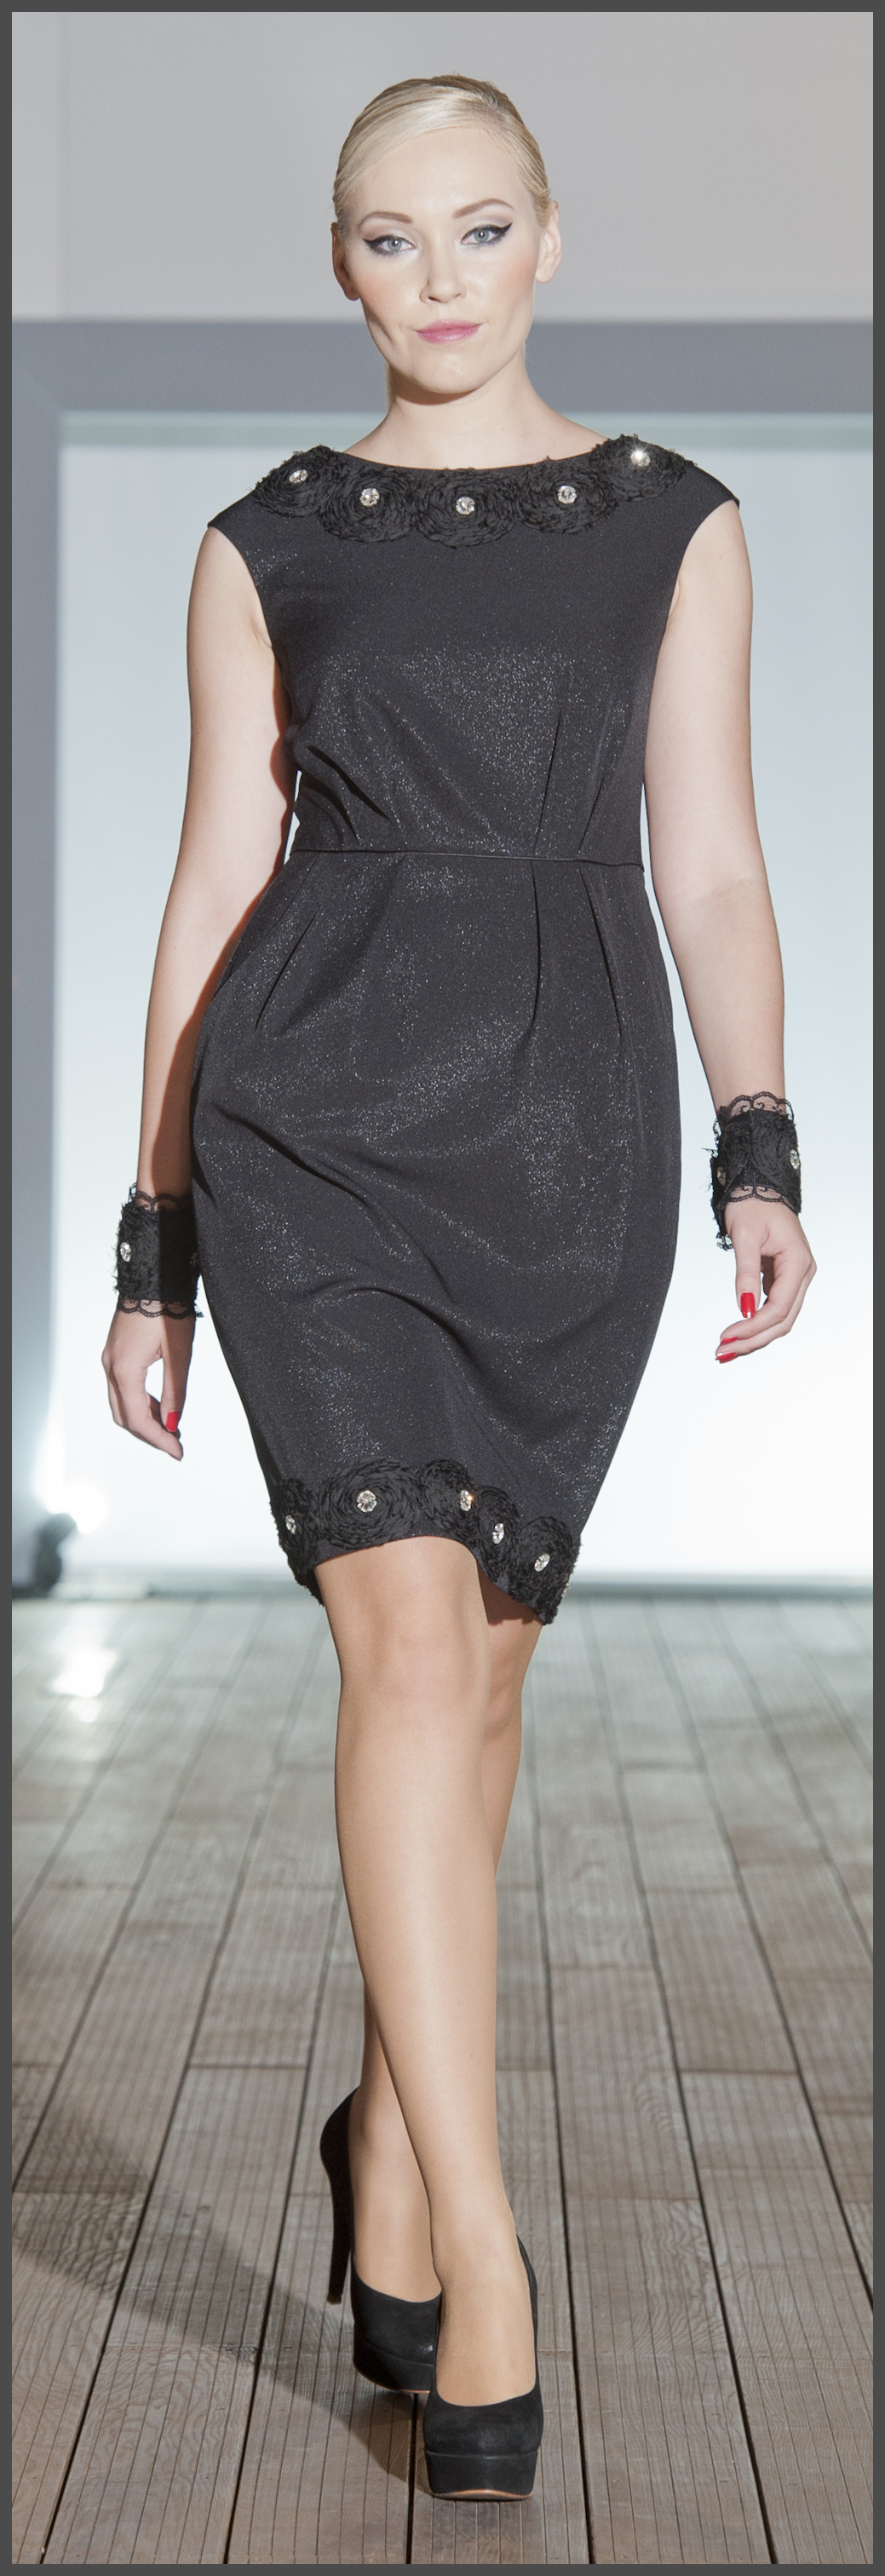 donnarosi-fall-winter-2012 (41).jpg